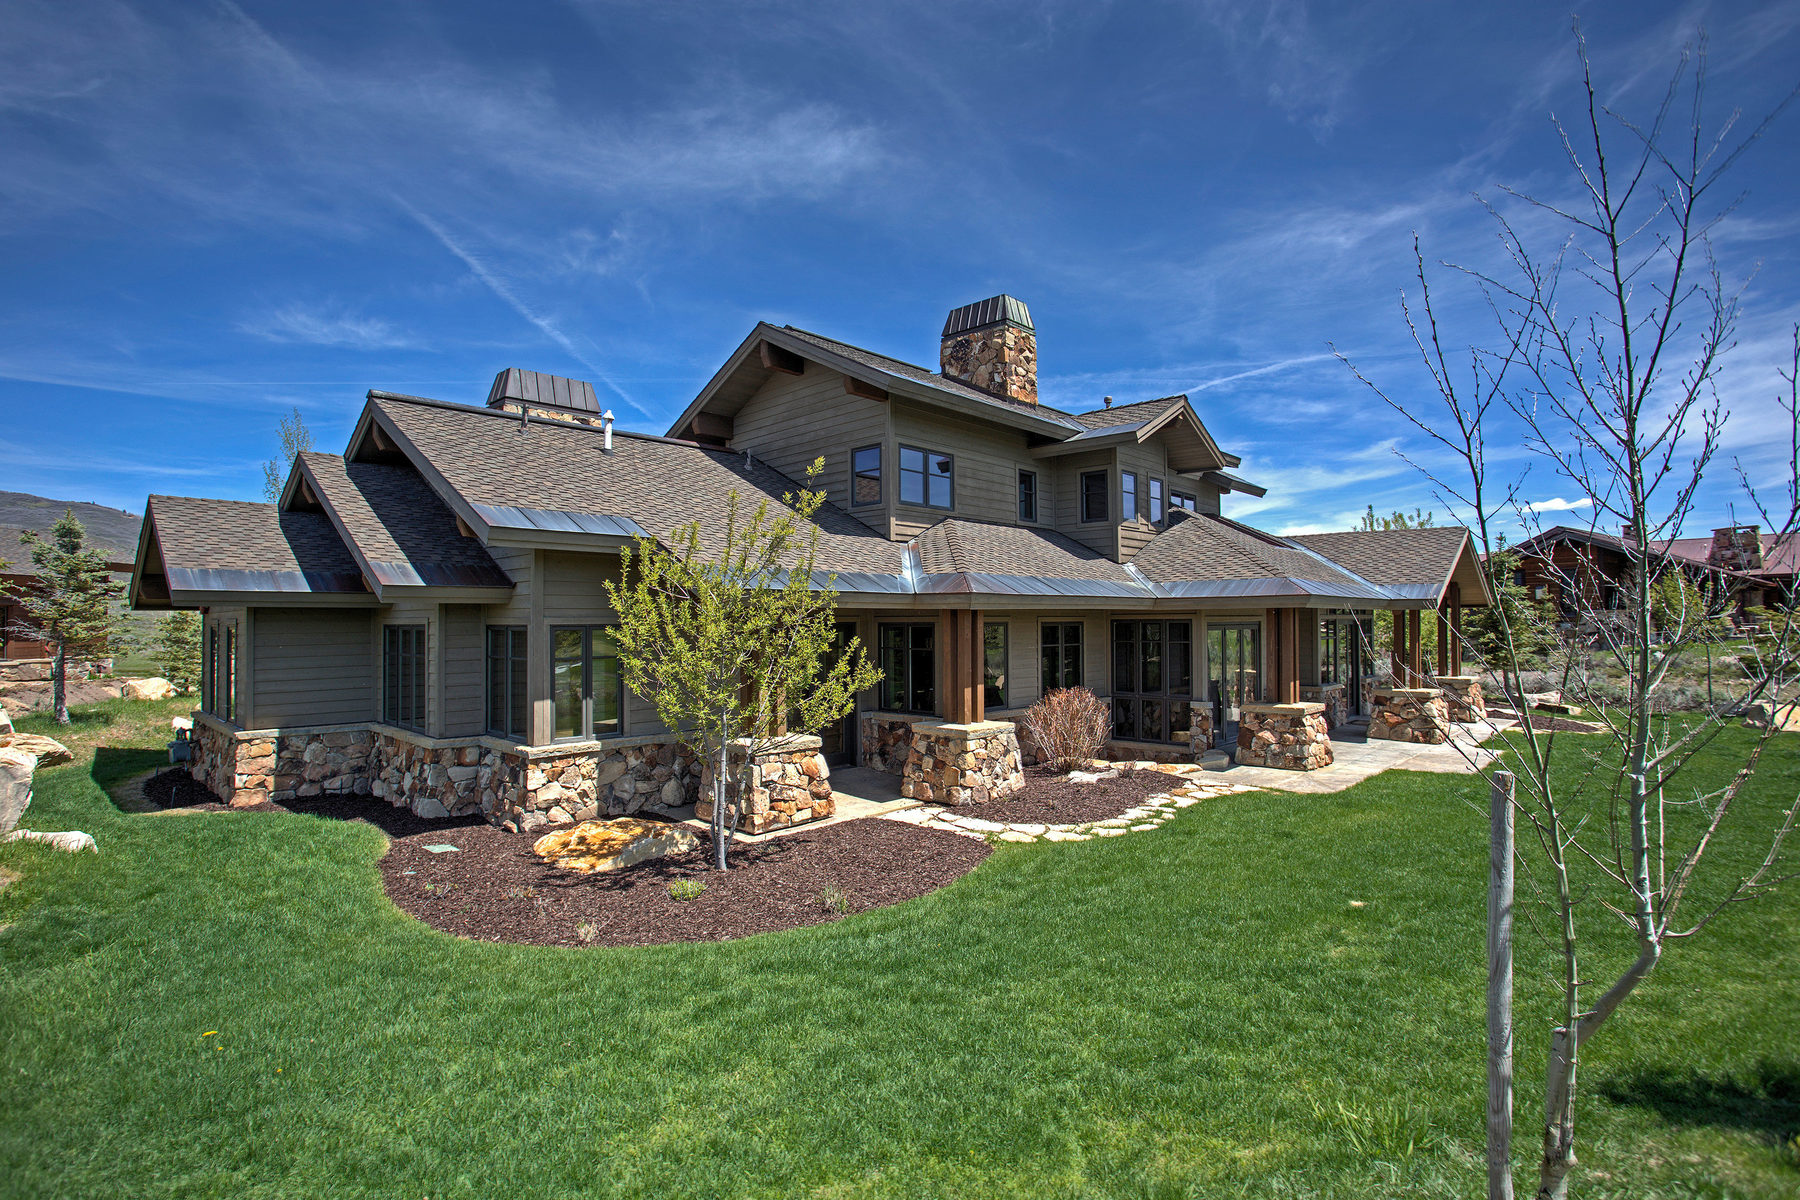 一戸建て のために 売買 アット Park City Lifestyle at its Finest on Glenwild Golf Course 8115 Glenwild Dr Park City, ユタ, 84098 アメリカ合衆国